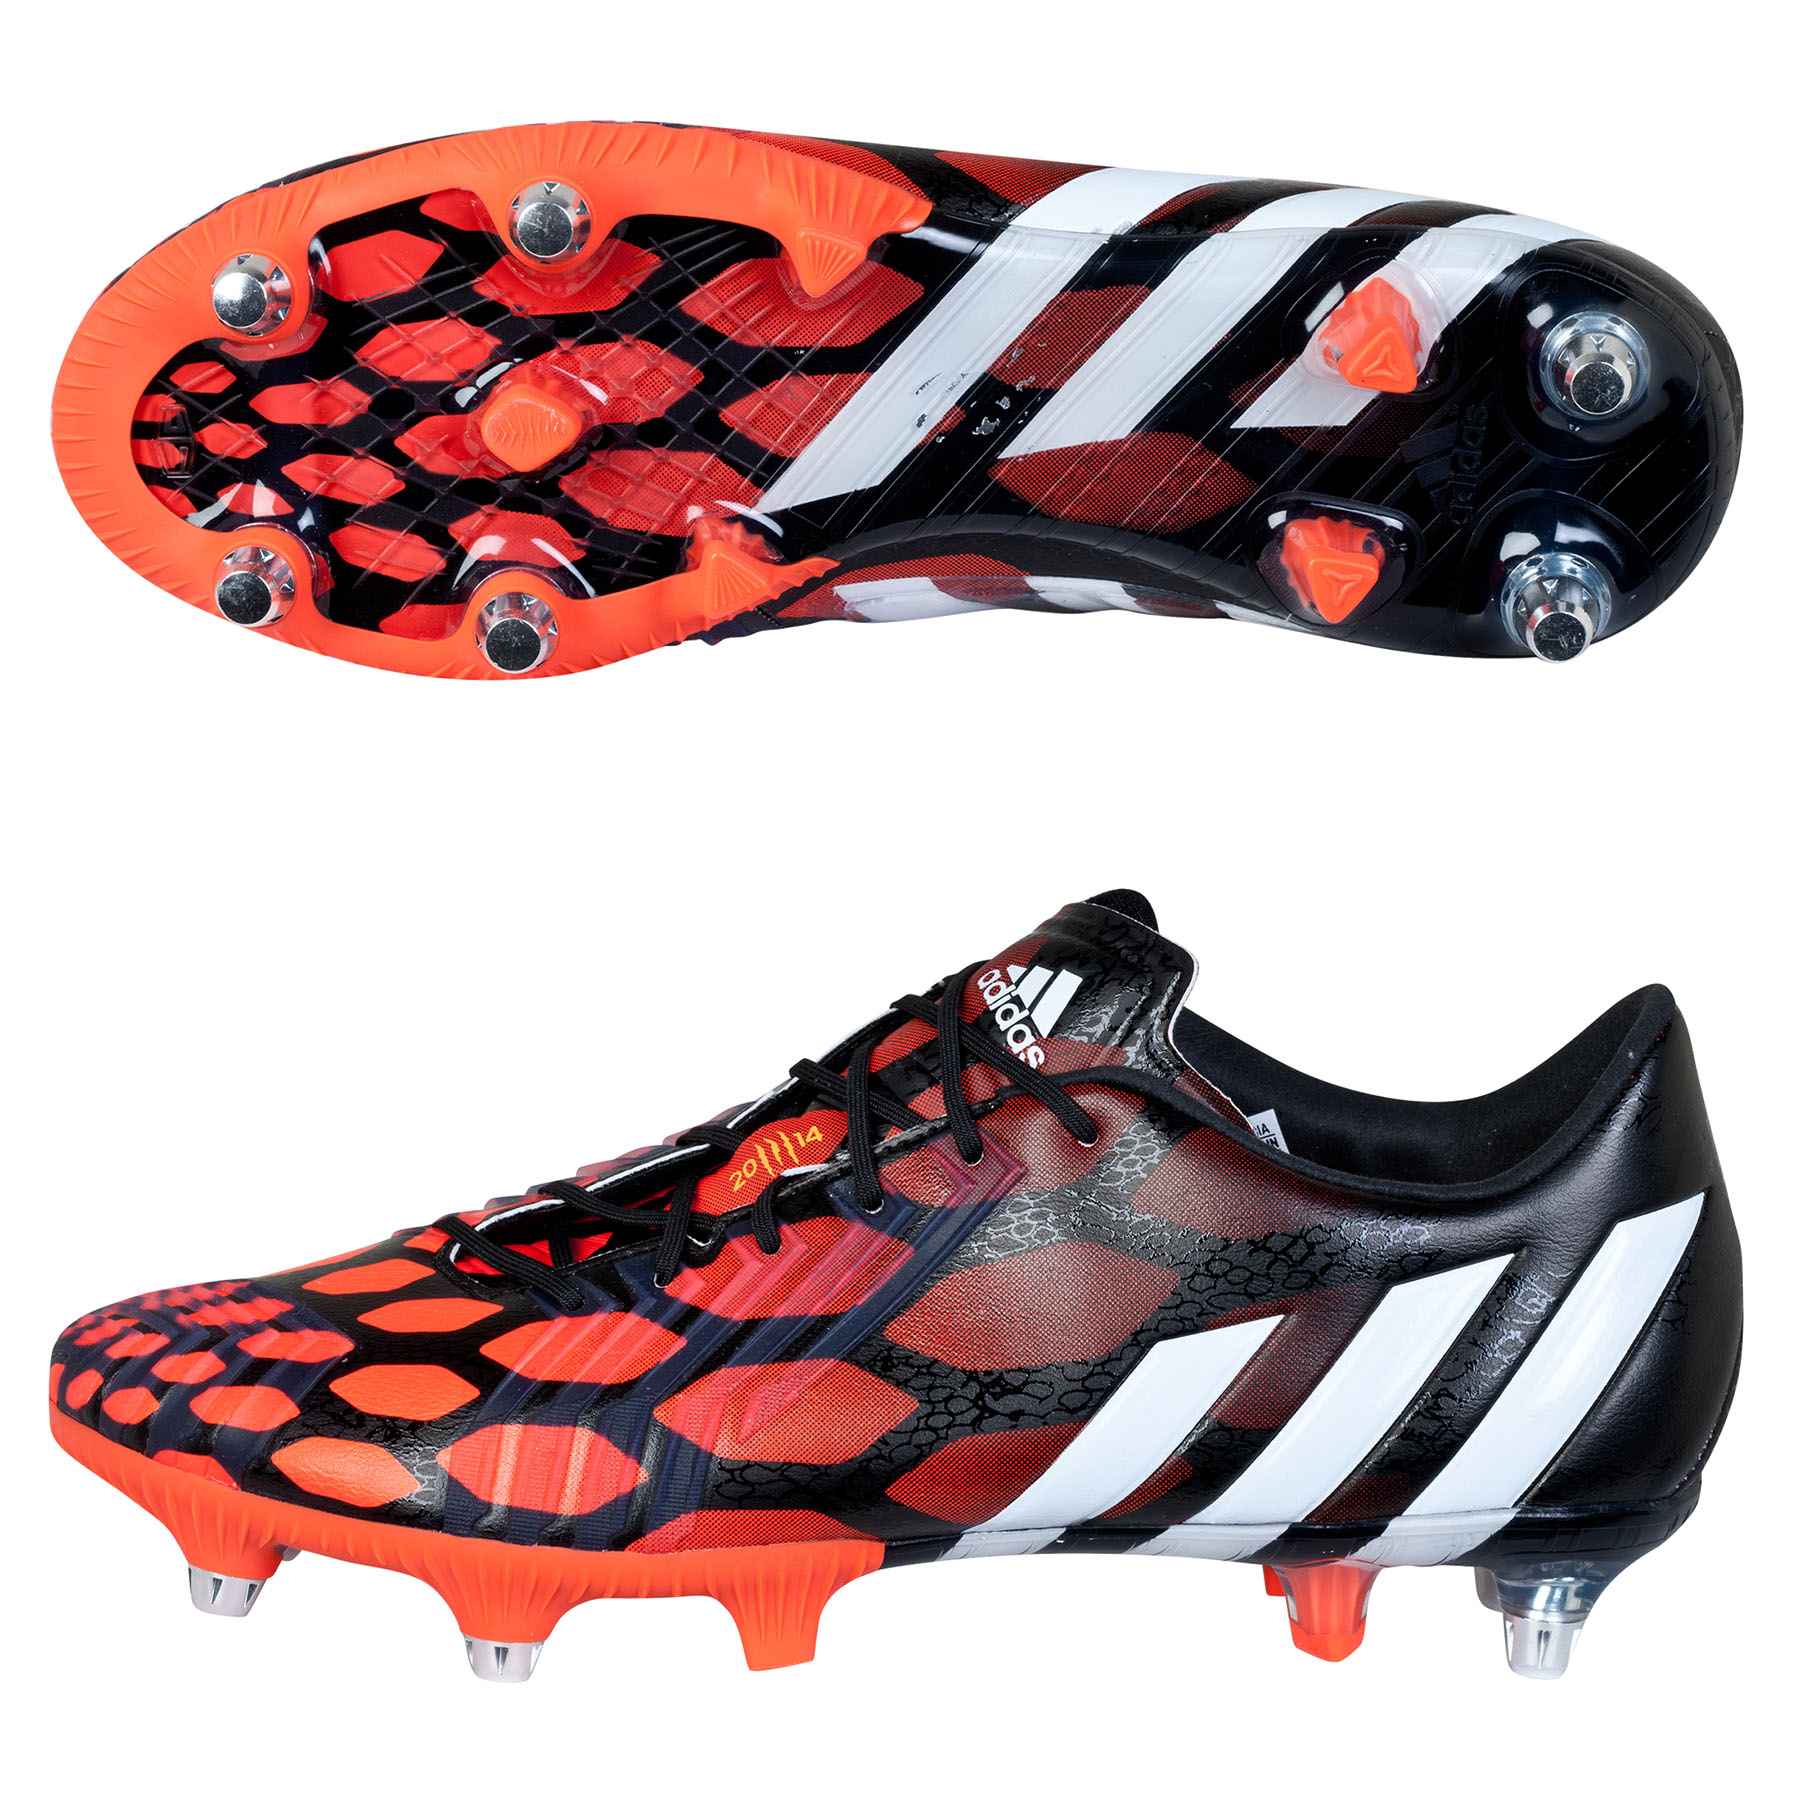 Adidas Predator LZ Soft Ground Football Boots Black